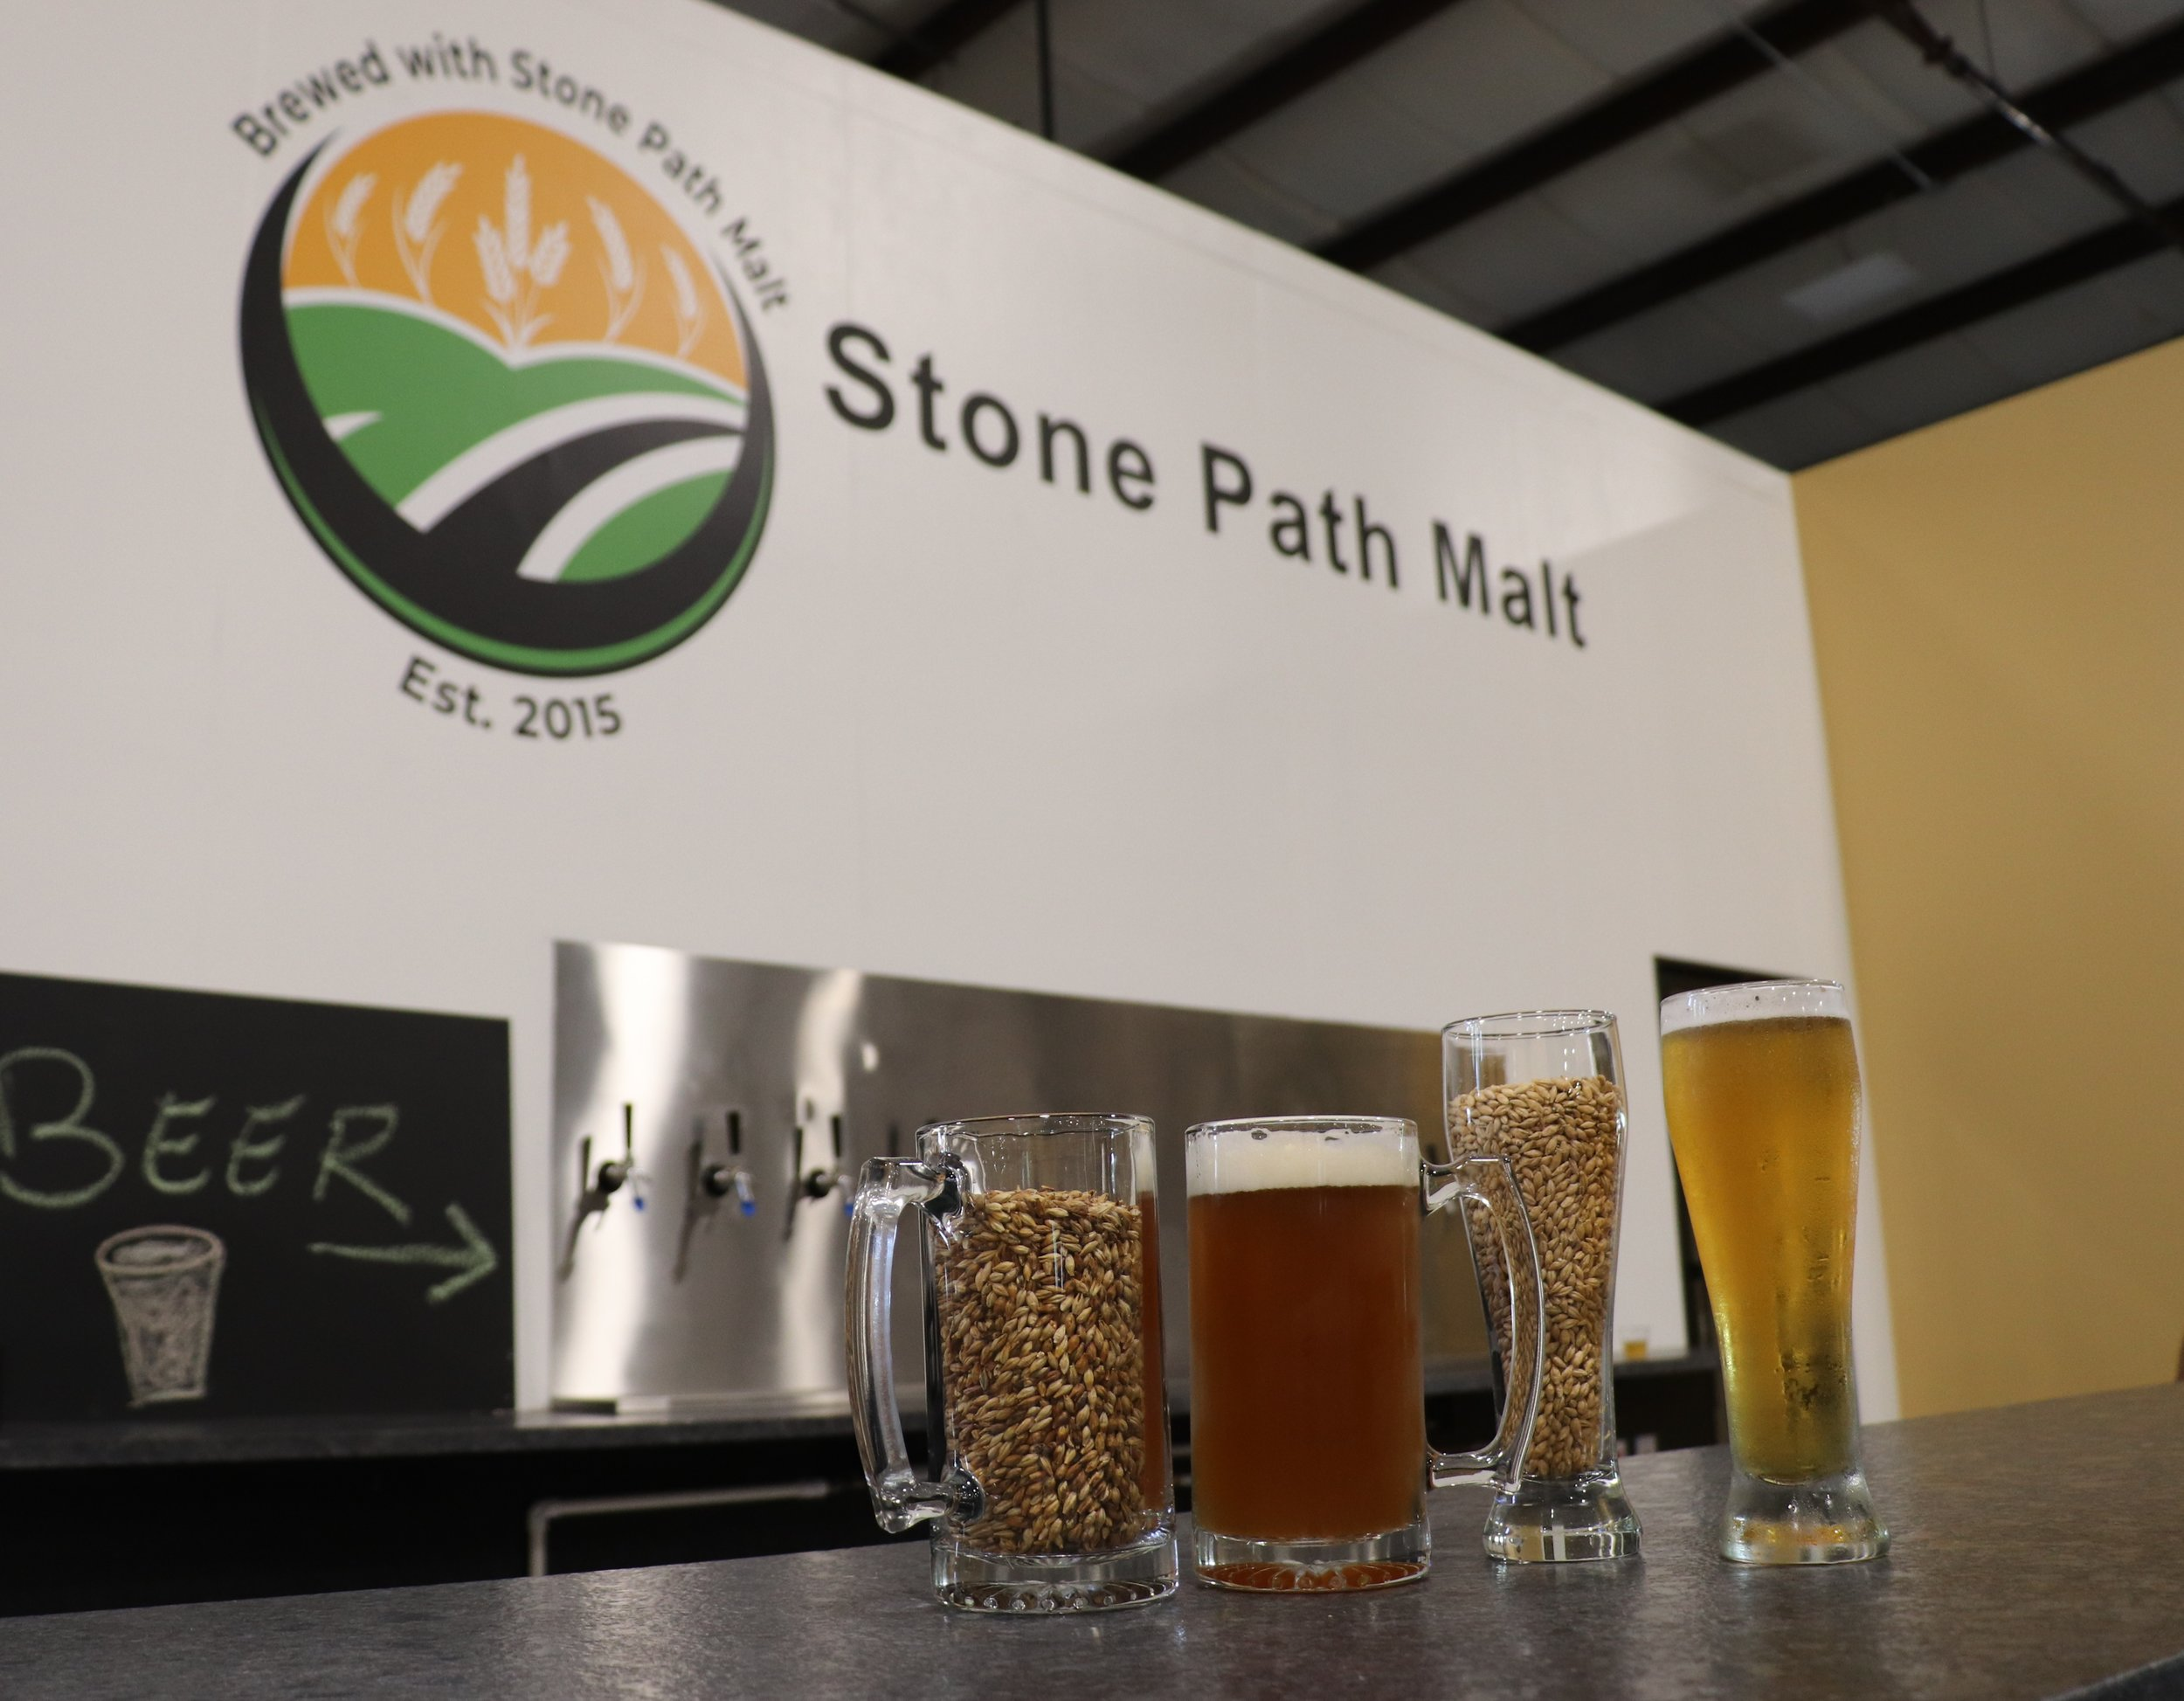 Stone Path Malt - While we love all the pop-up breweries throughout the city this summer, we are pretty excited to venture out of the city for Stone Path Malt's Oktoberfest celebrations at the end of the month. The new Maltery is perfect for beer connoisseurs, families, or if you're just looking for a cold one! The taproom has some local New England craft favorites, and for Oktoberfest weekend they'll be plenty of food, games, and beer on tap for all! Prost! - JJ